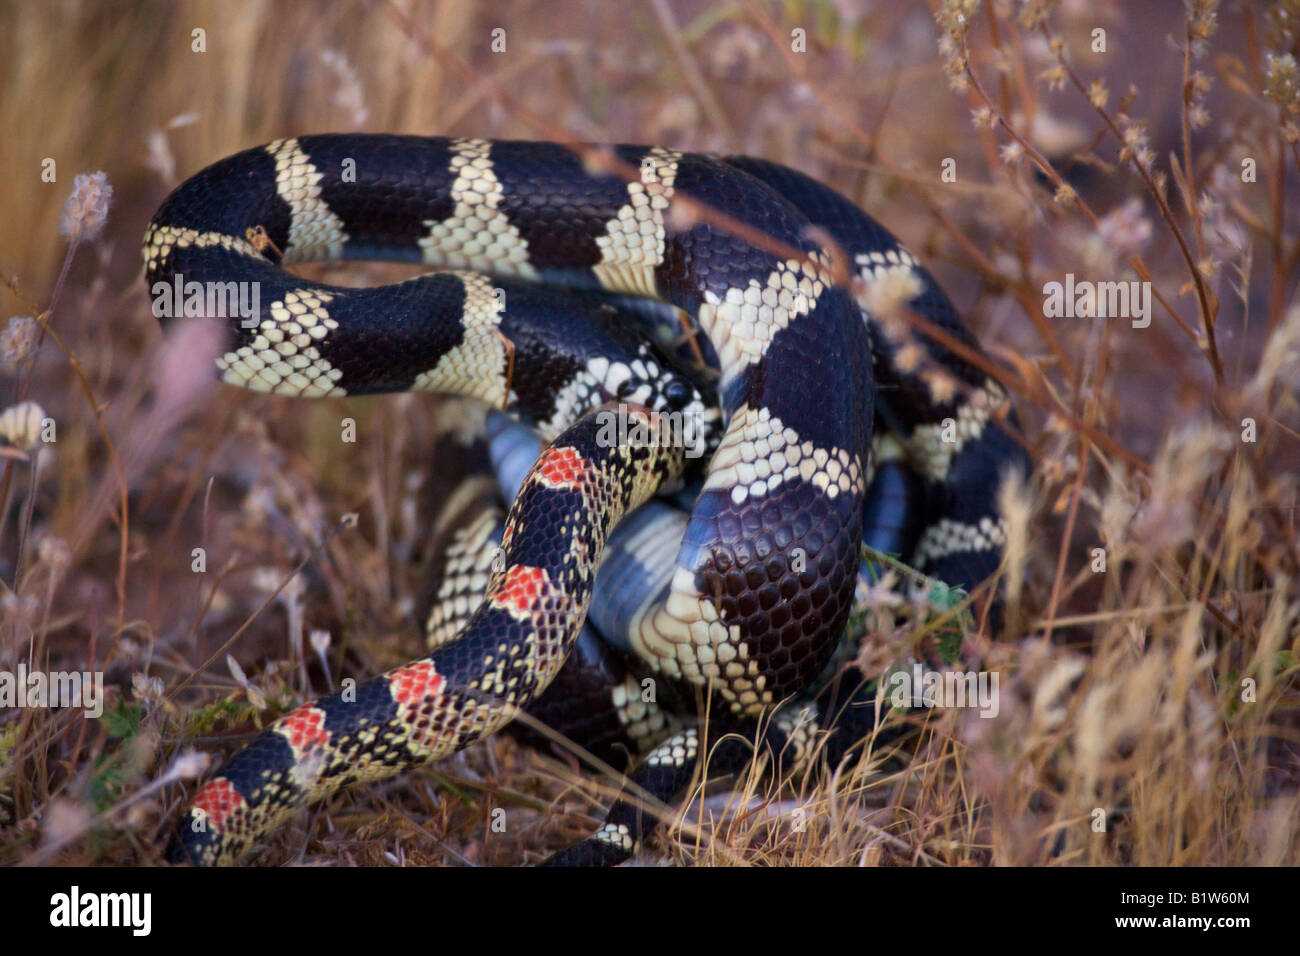 A Common King Snake attacks a Long nosed snake  near Fountain Hills outside of Phoenix Arizona - Stock Image